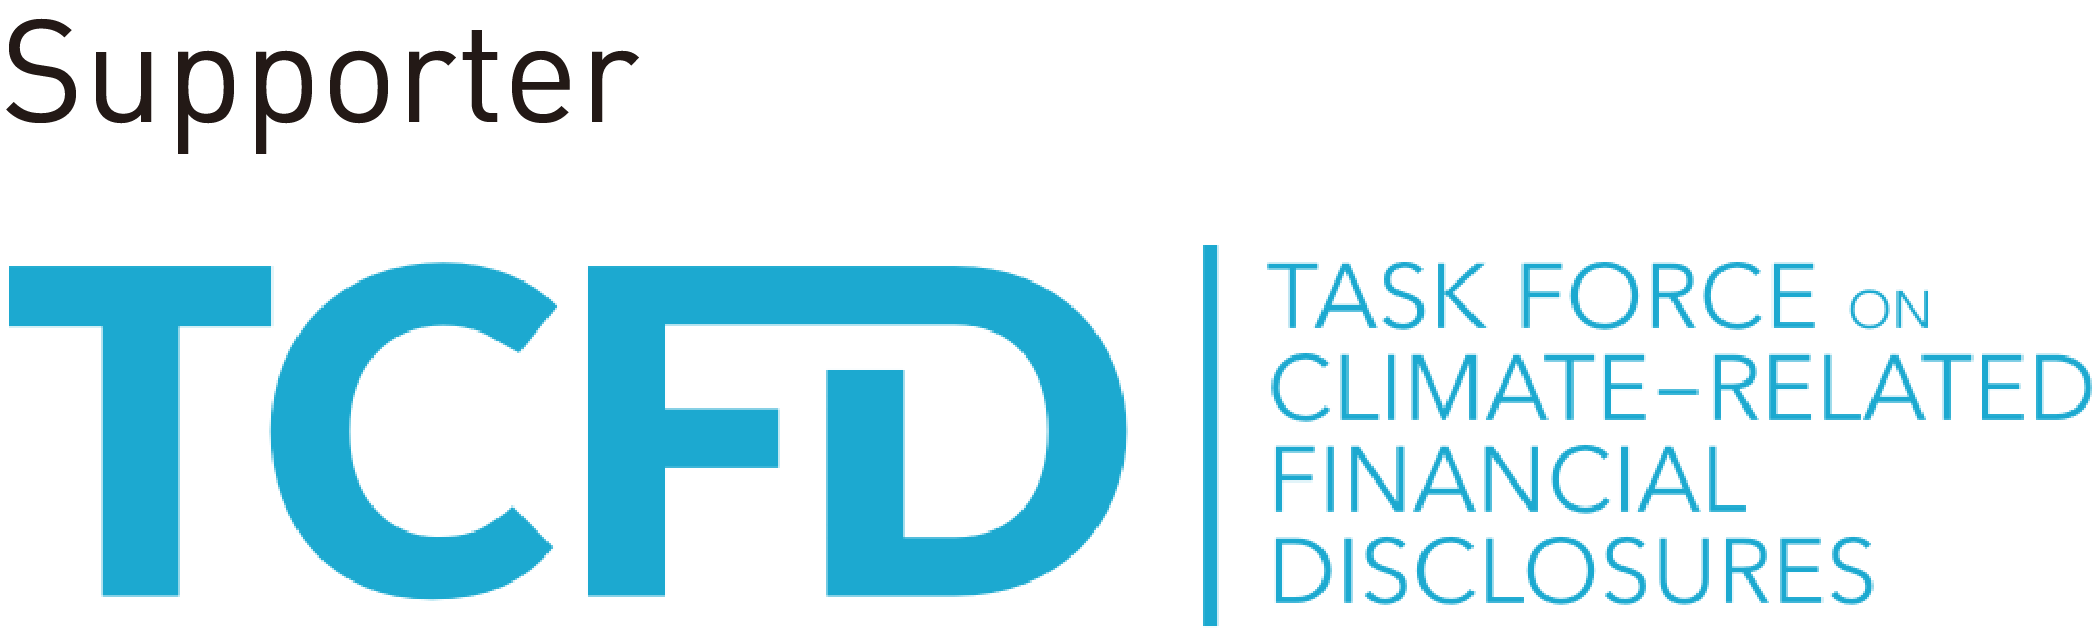 preview-lightbox-06 - TCFD_logo_Supporter